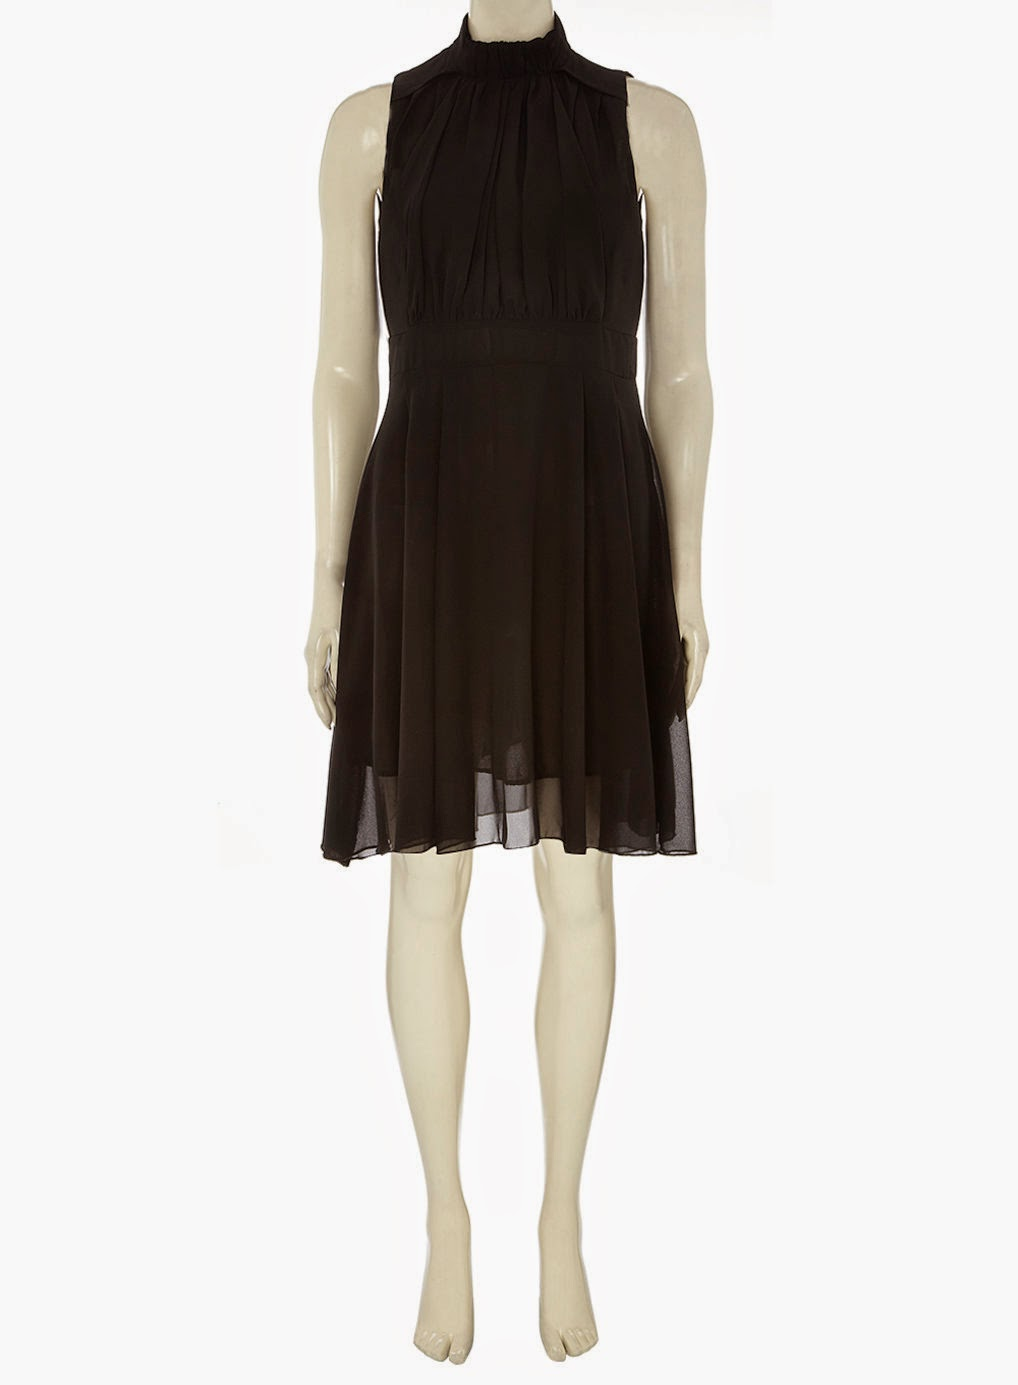 dorothy perkins chiffon dress, dorothy perkins high neck black dress,